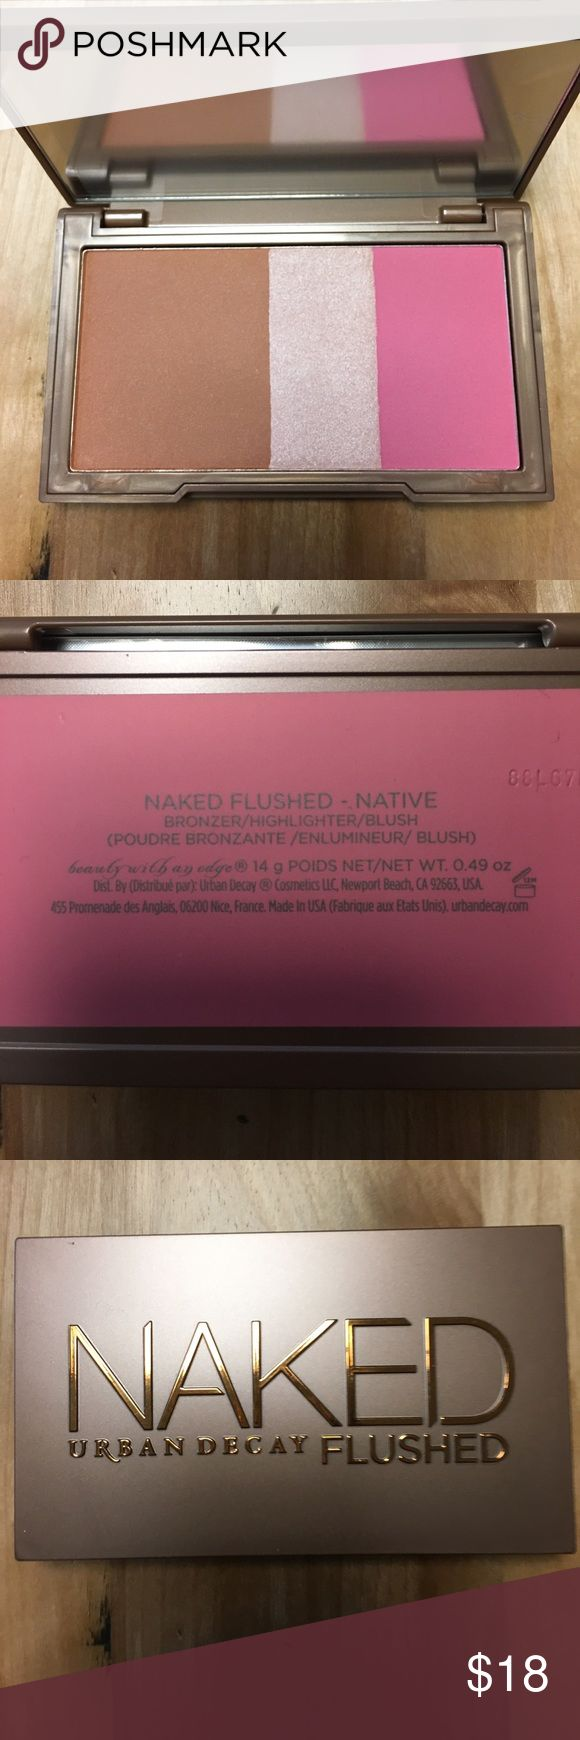 Naked Urban Decay Flushed - Native - Brand New Naked Urban Decay Flushed - Native - Brand New - no box Urban Decay Makeup